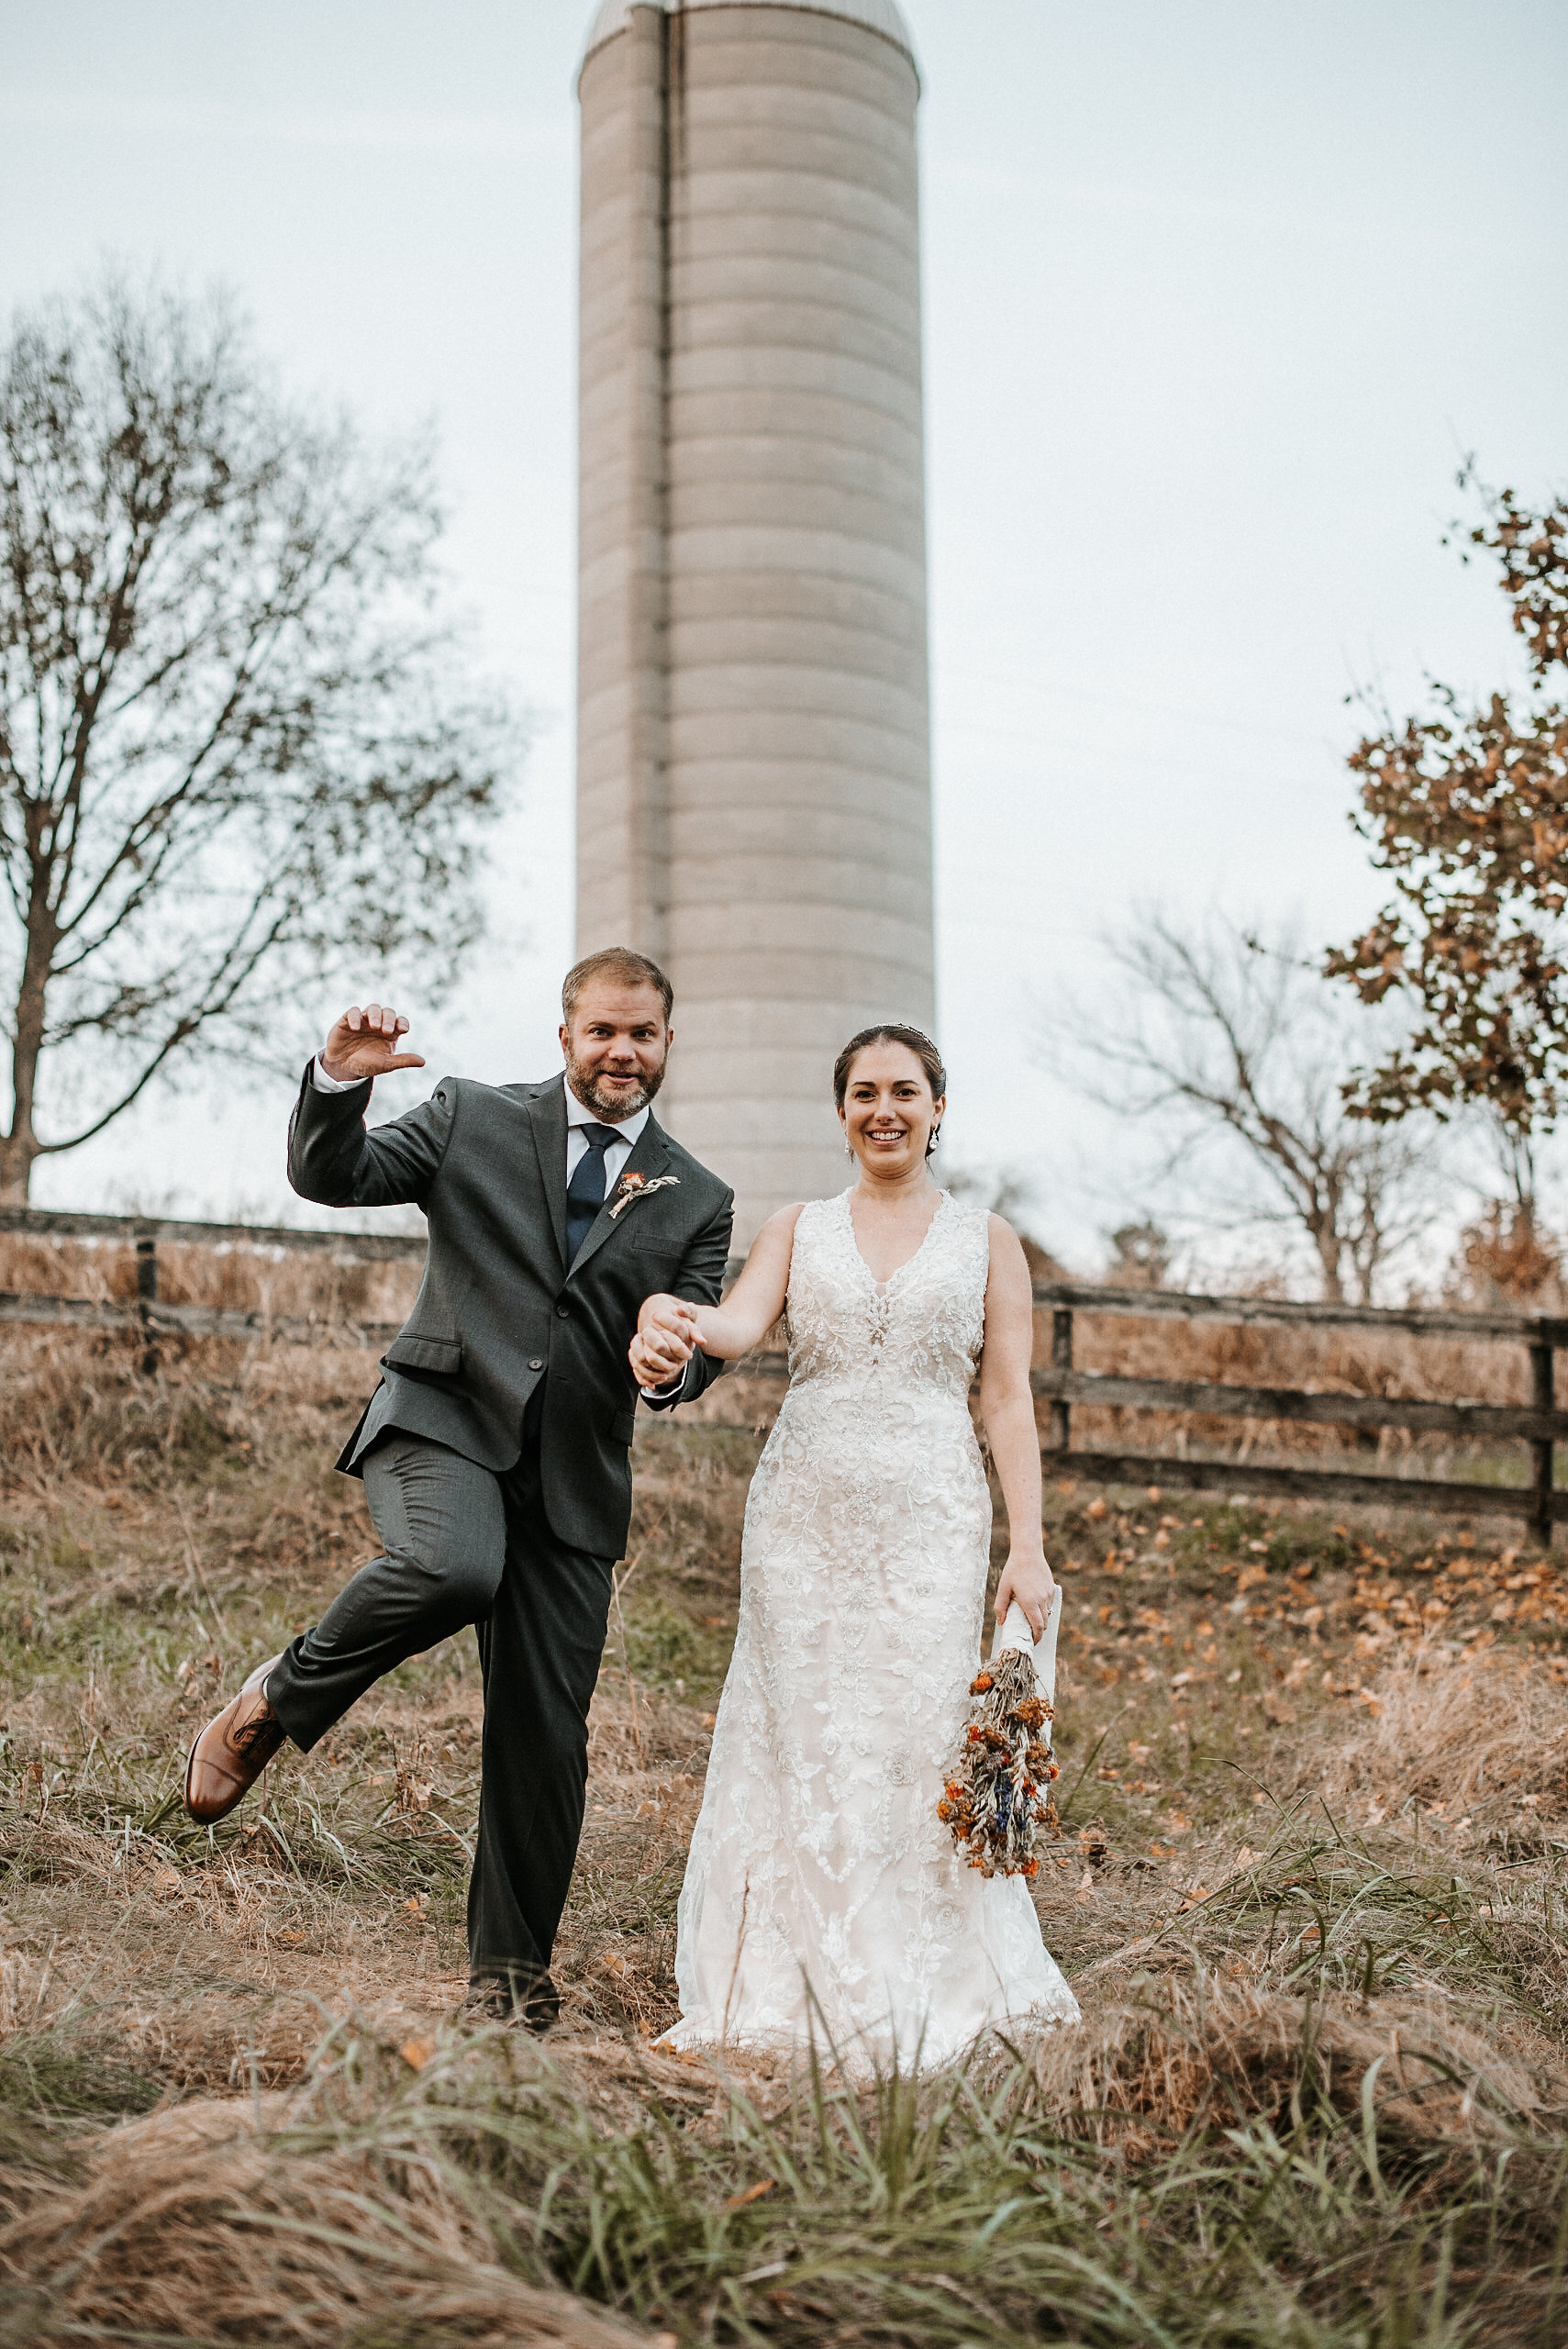 Bride and groom in front of silo